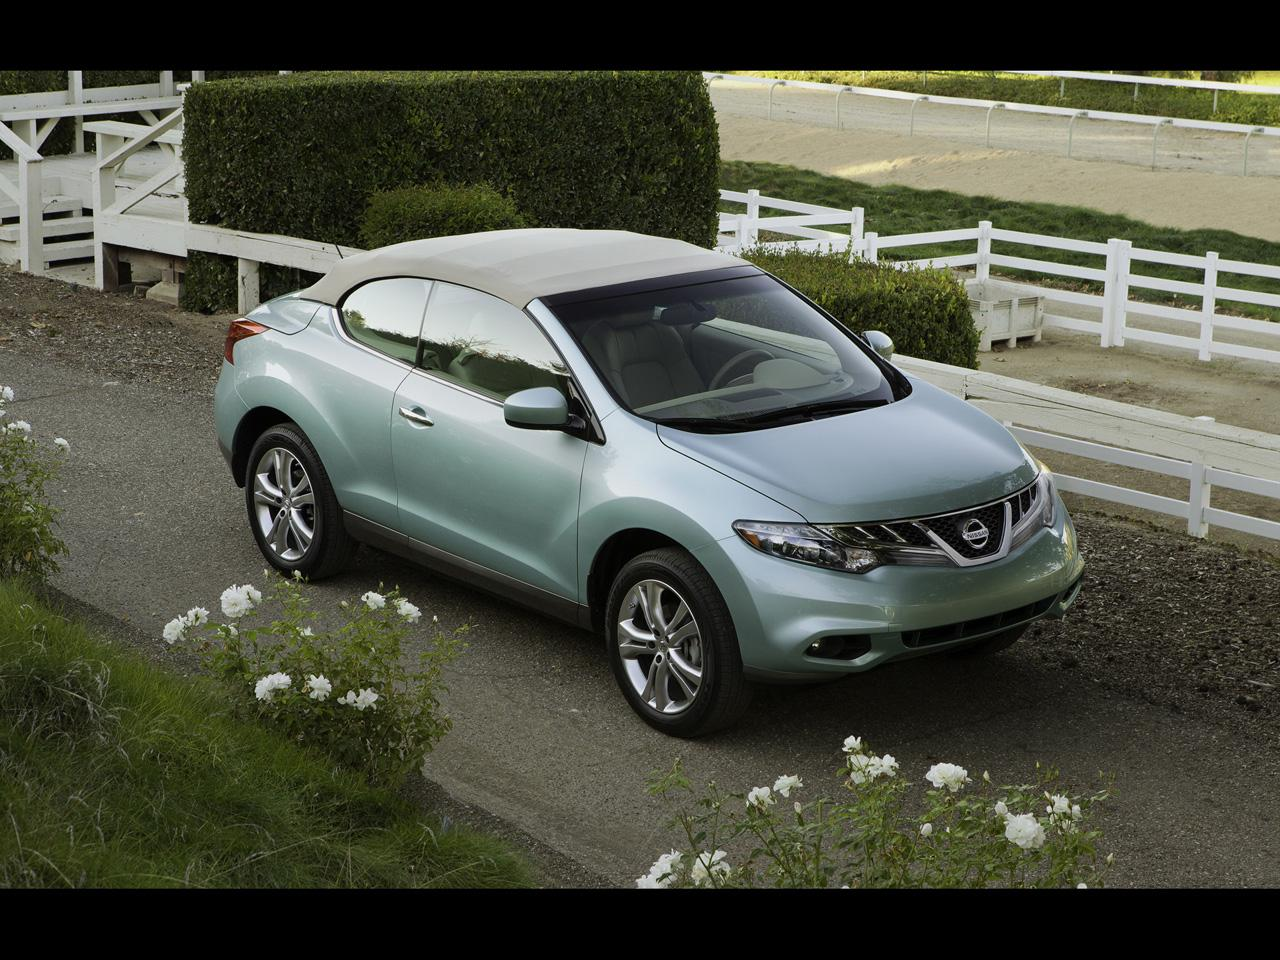 2011 Nissan Murano Cross Cabriolet Wallpapers Car And